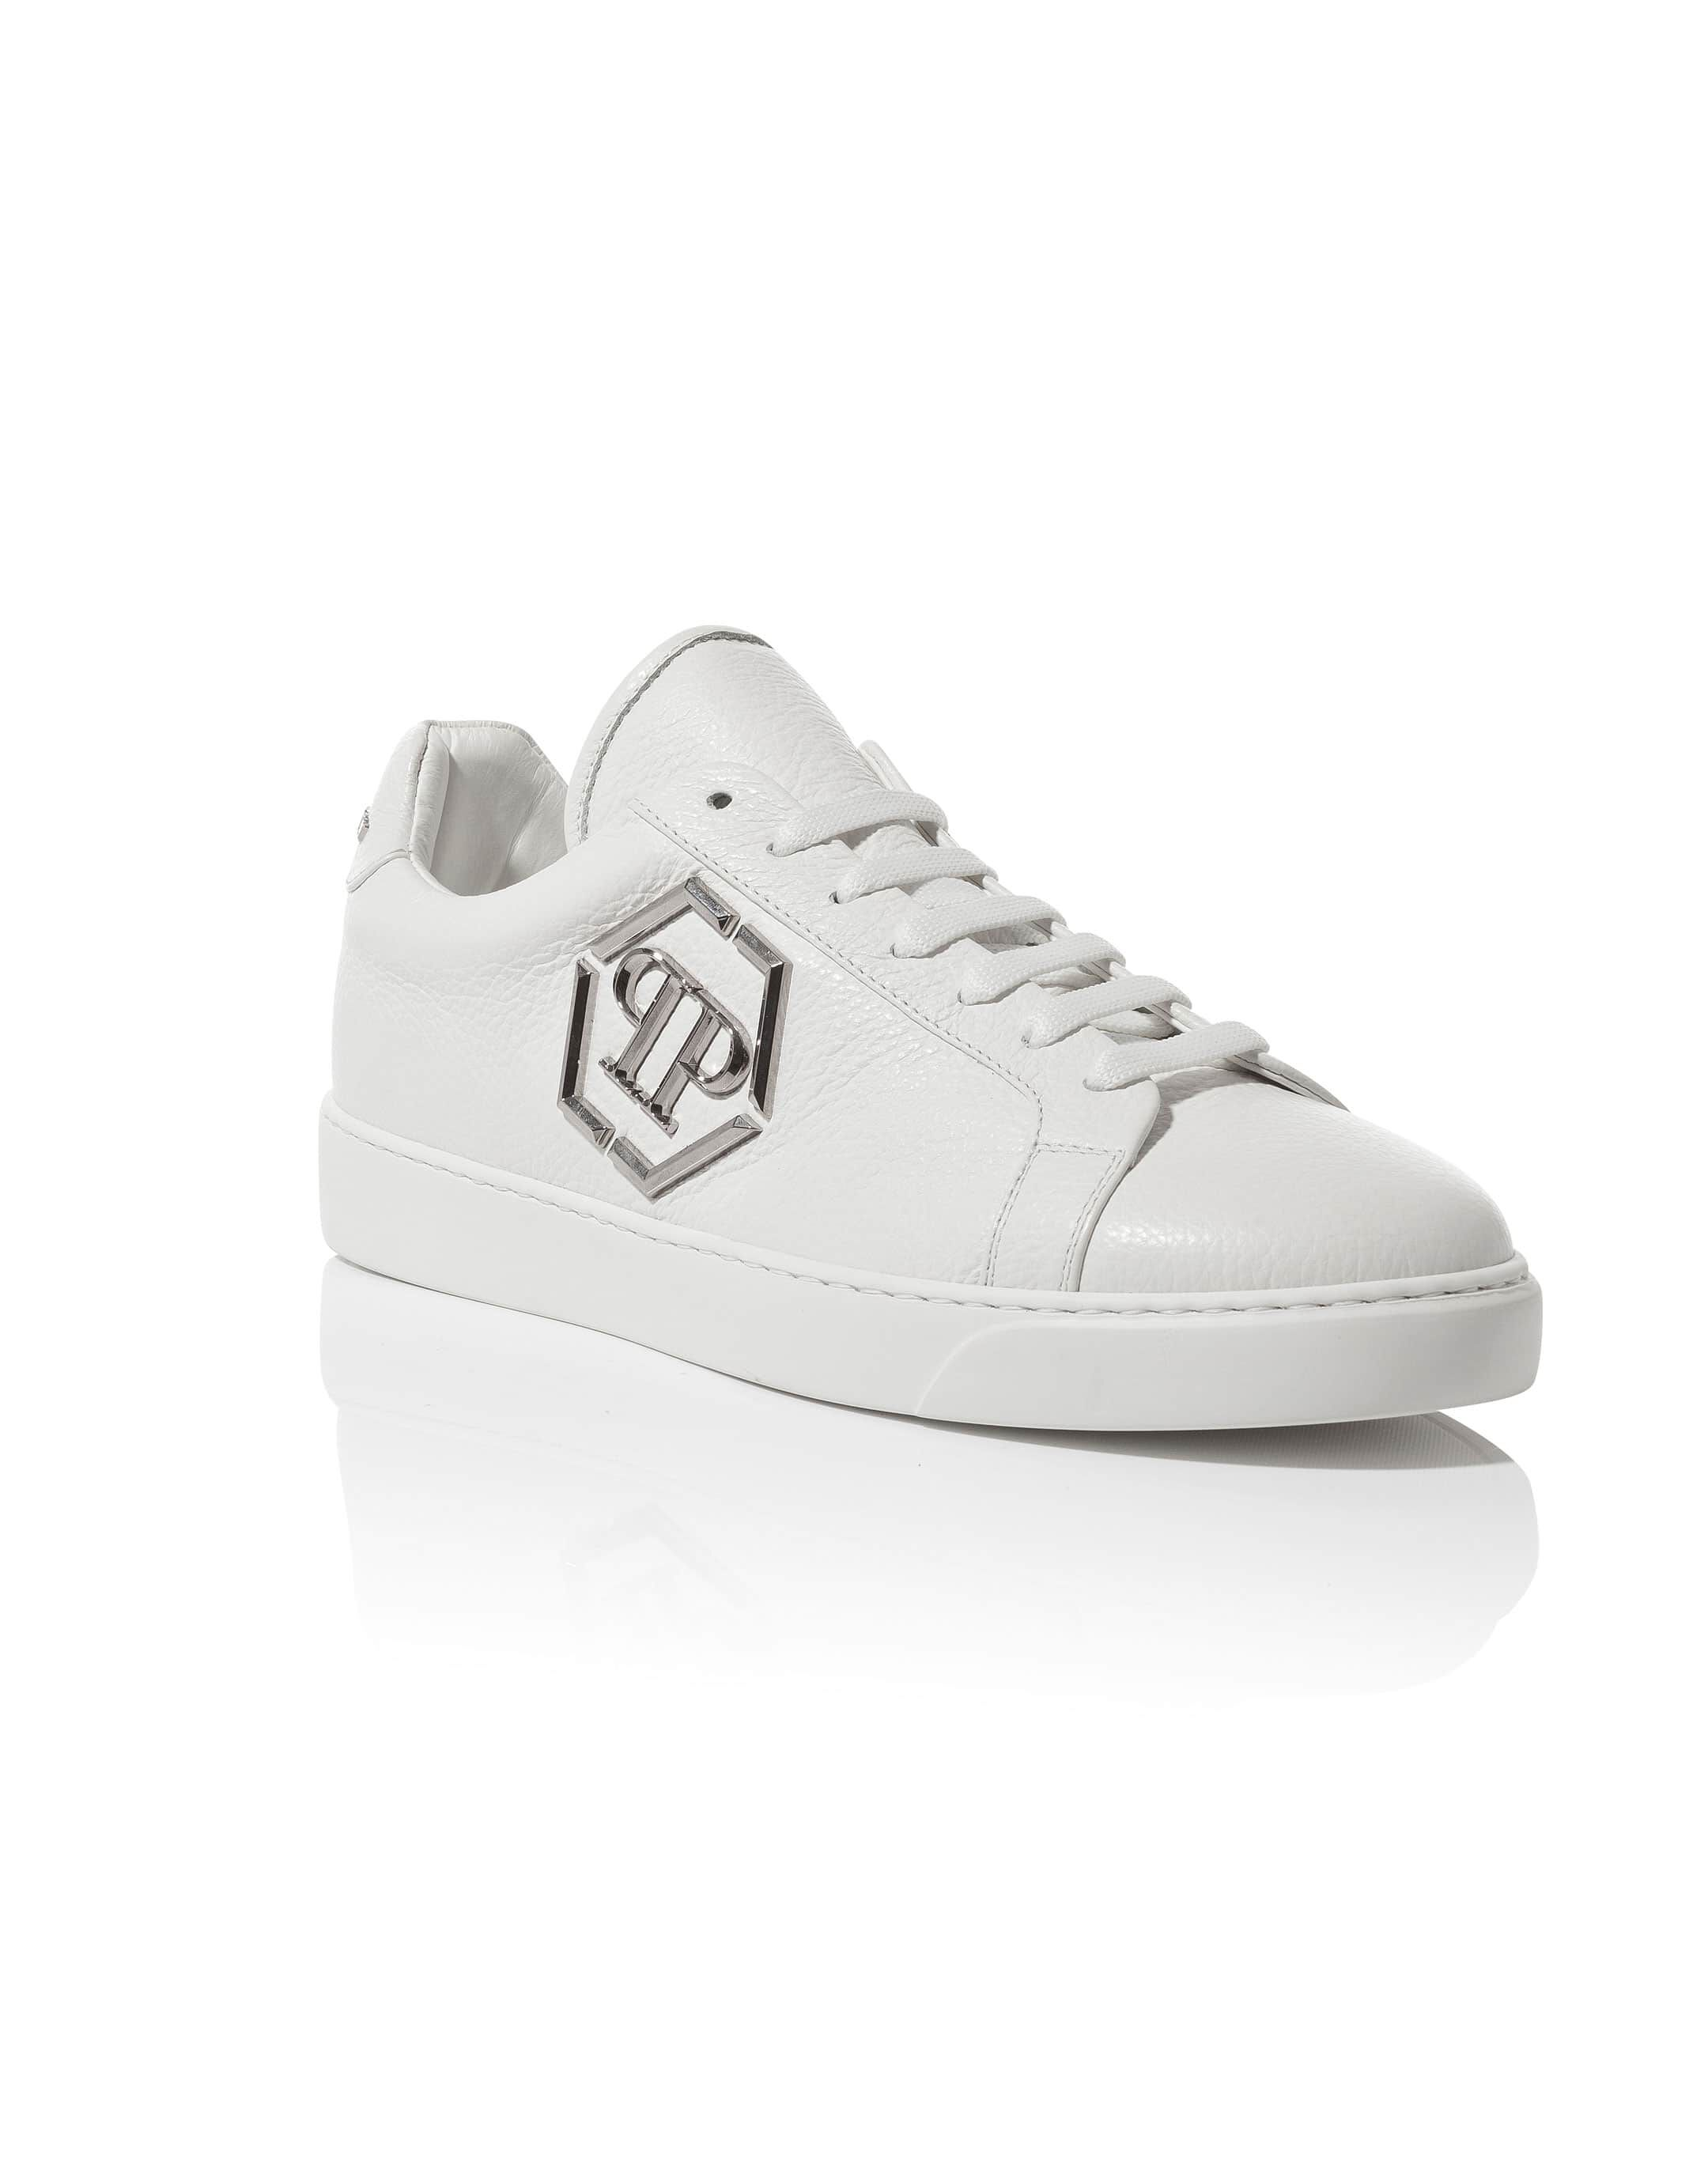 Over The Top sneakers - White Philipp Plein